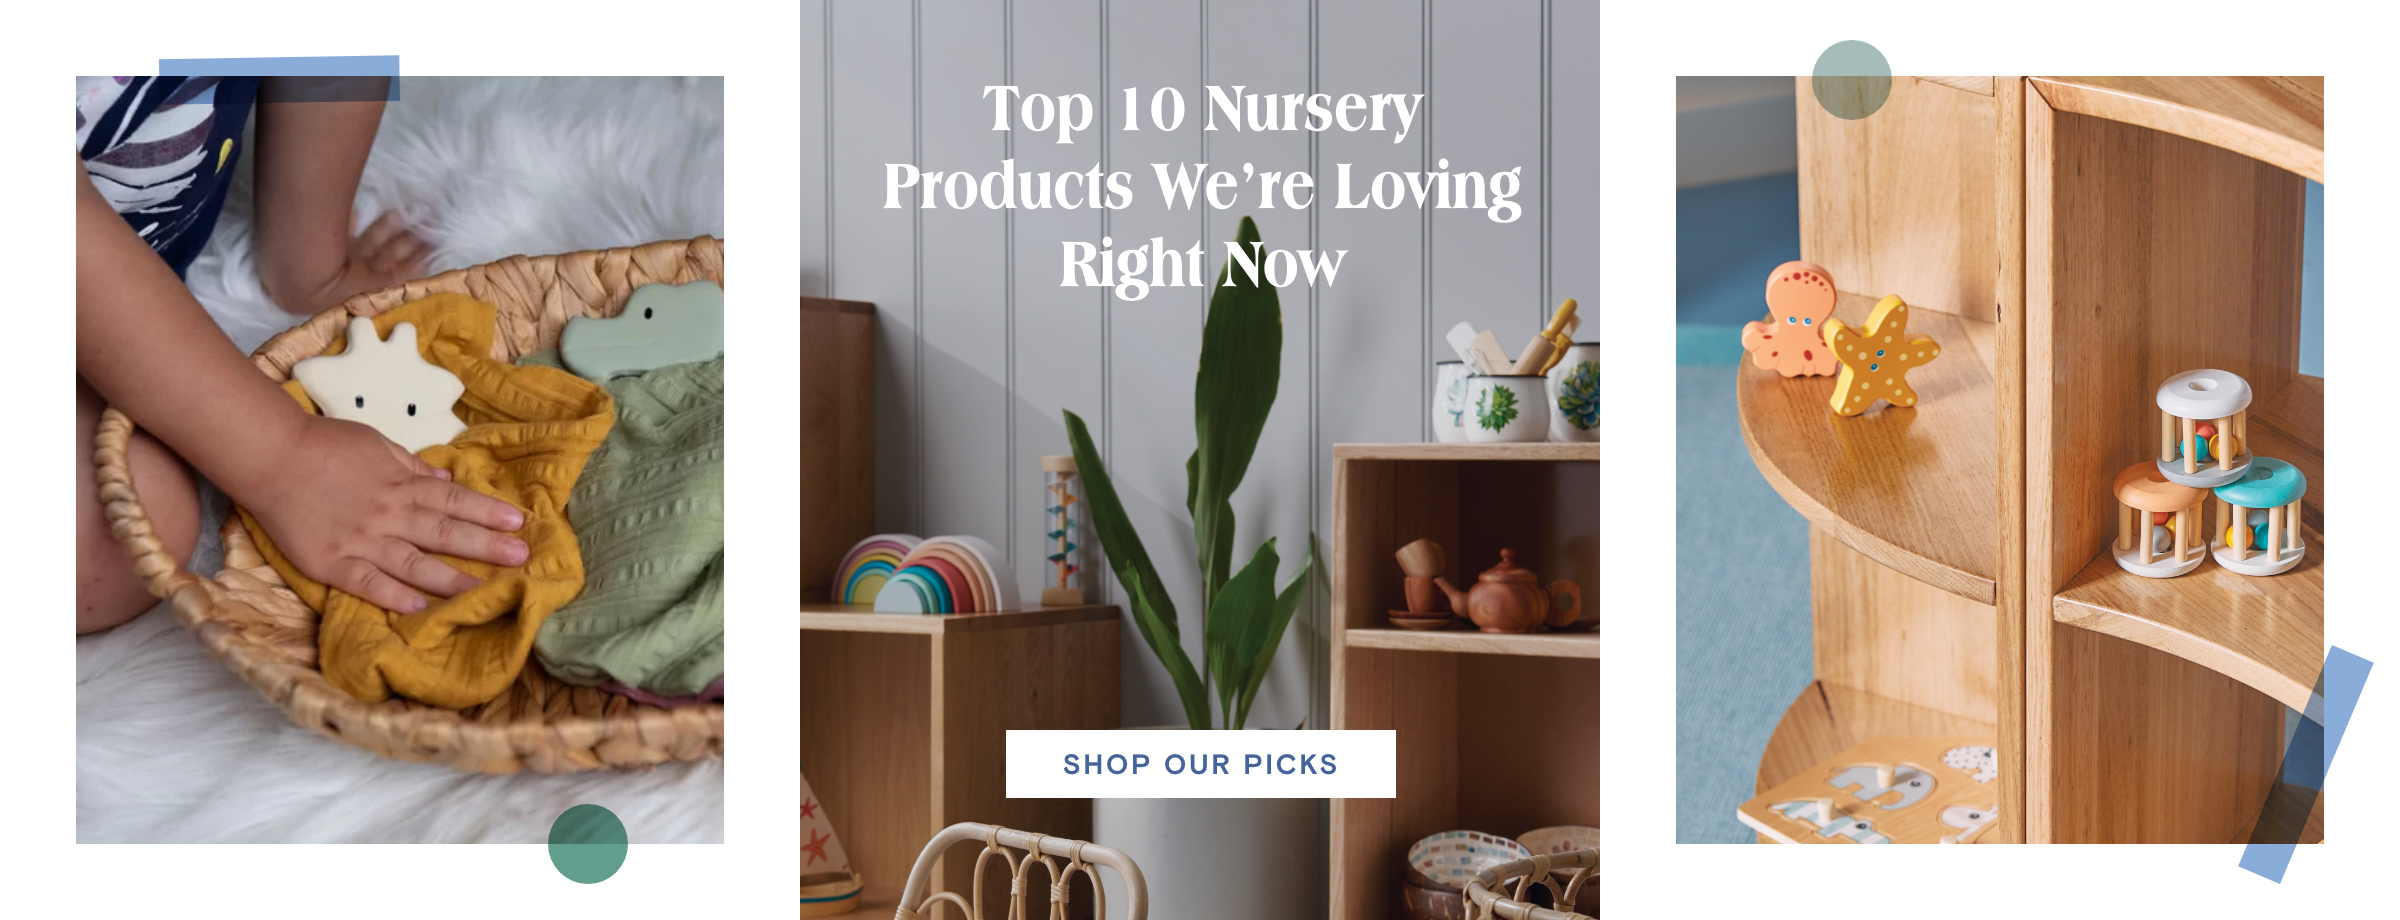 top 10 nursery products